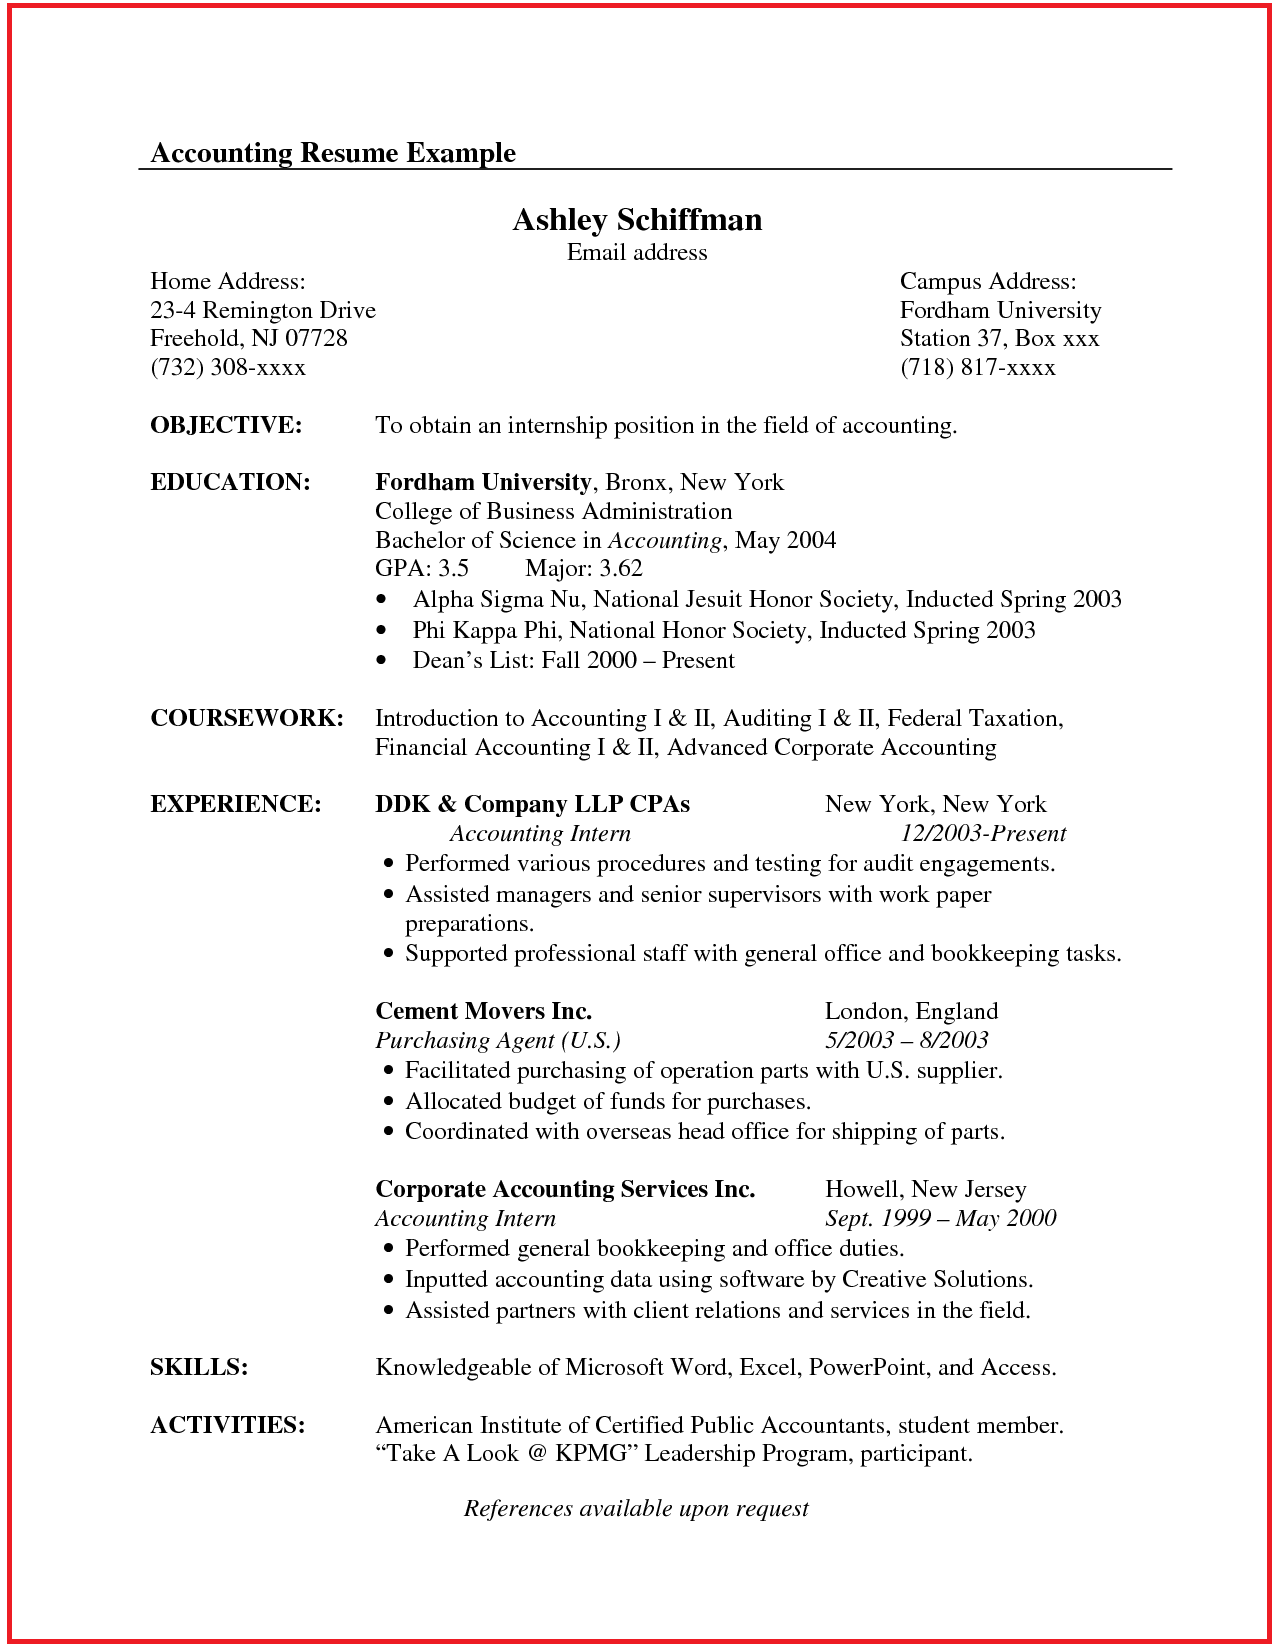 Pin by Josi Perez on Business | Pinterest | Resume format, Job ...